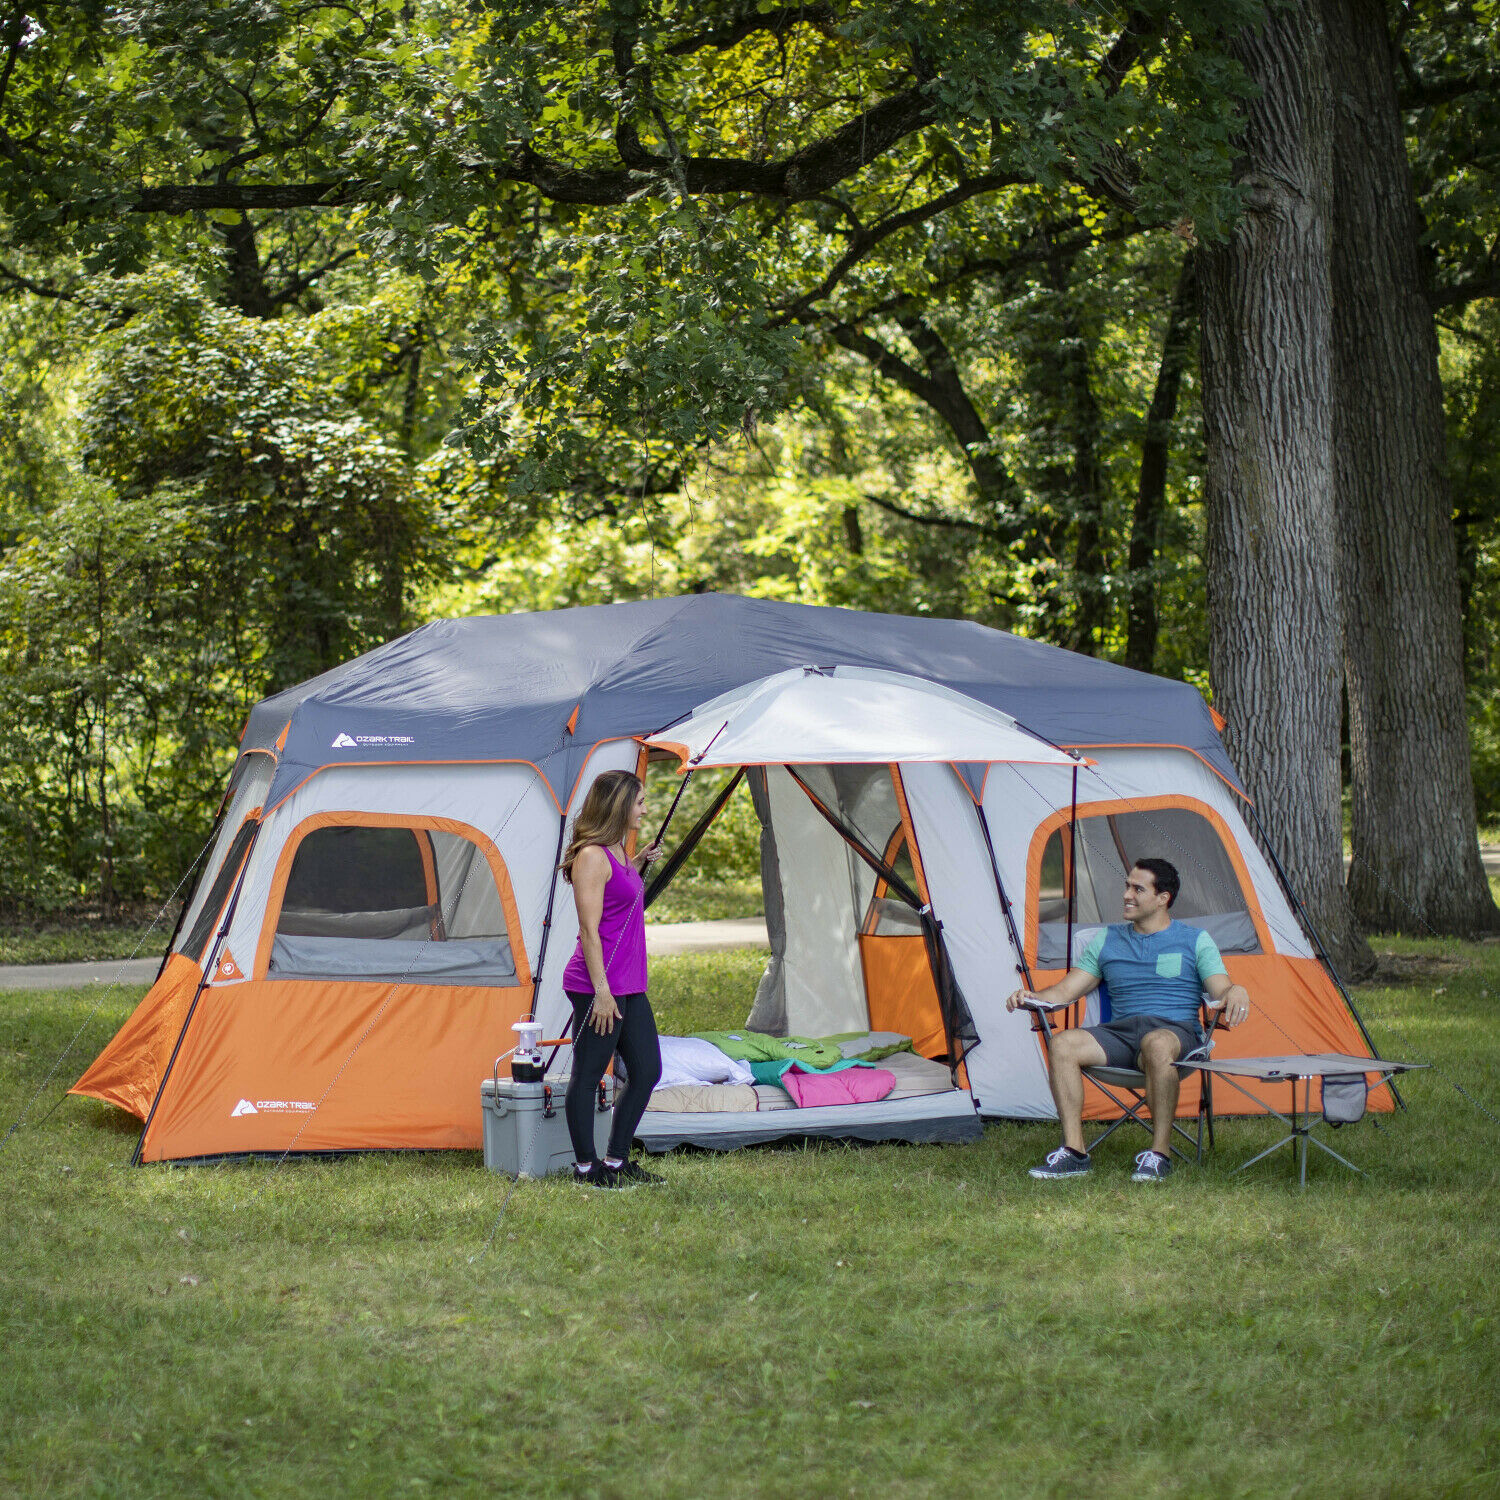 12 Person Instant Cabin Tent W Integrated Led Light e Shade Porch, 18 X 10